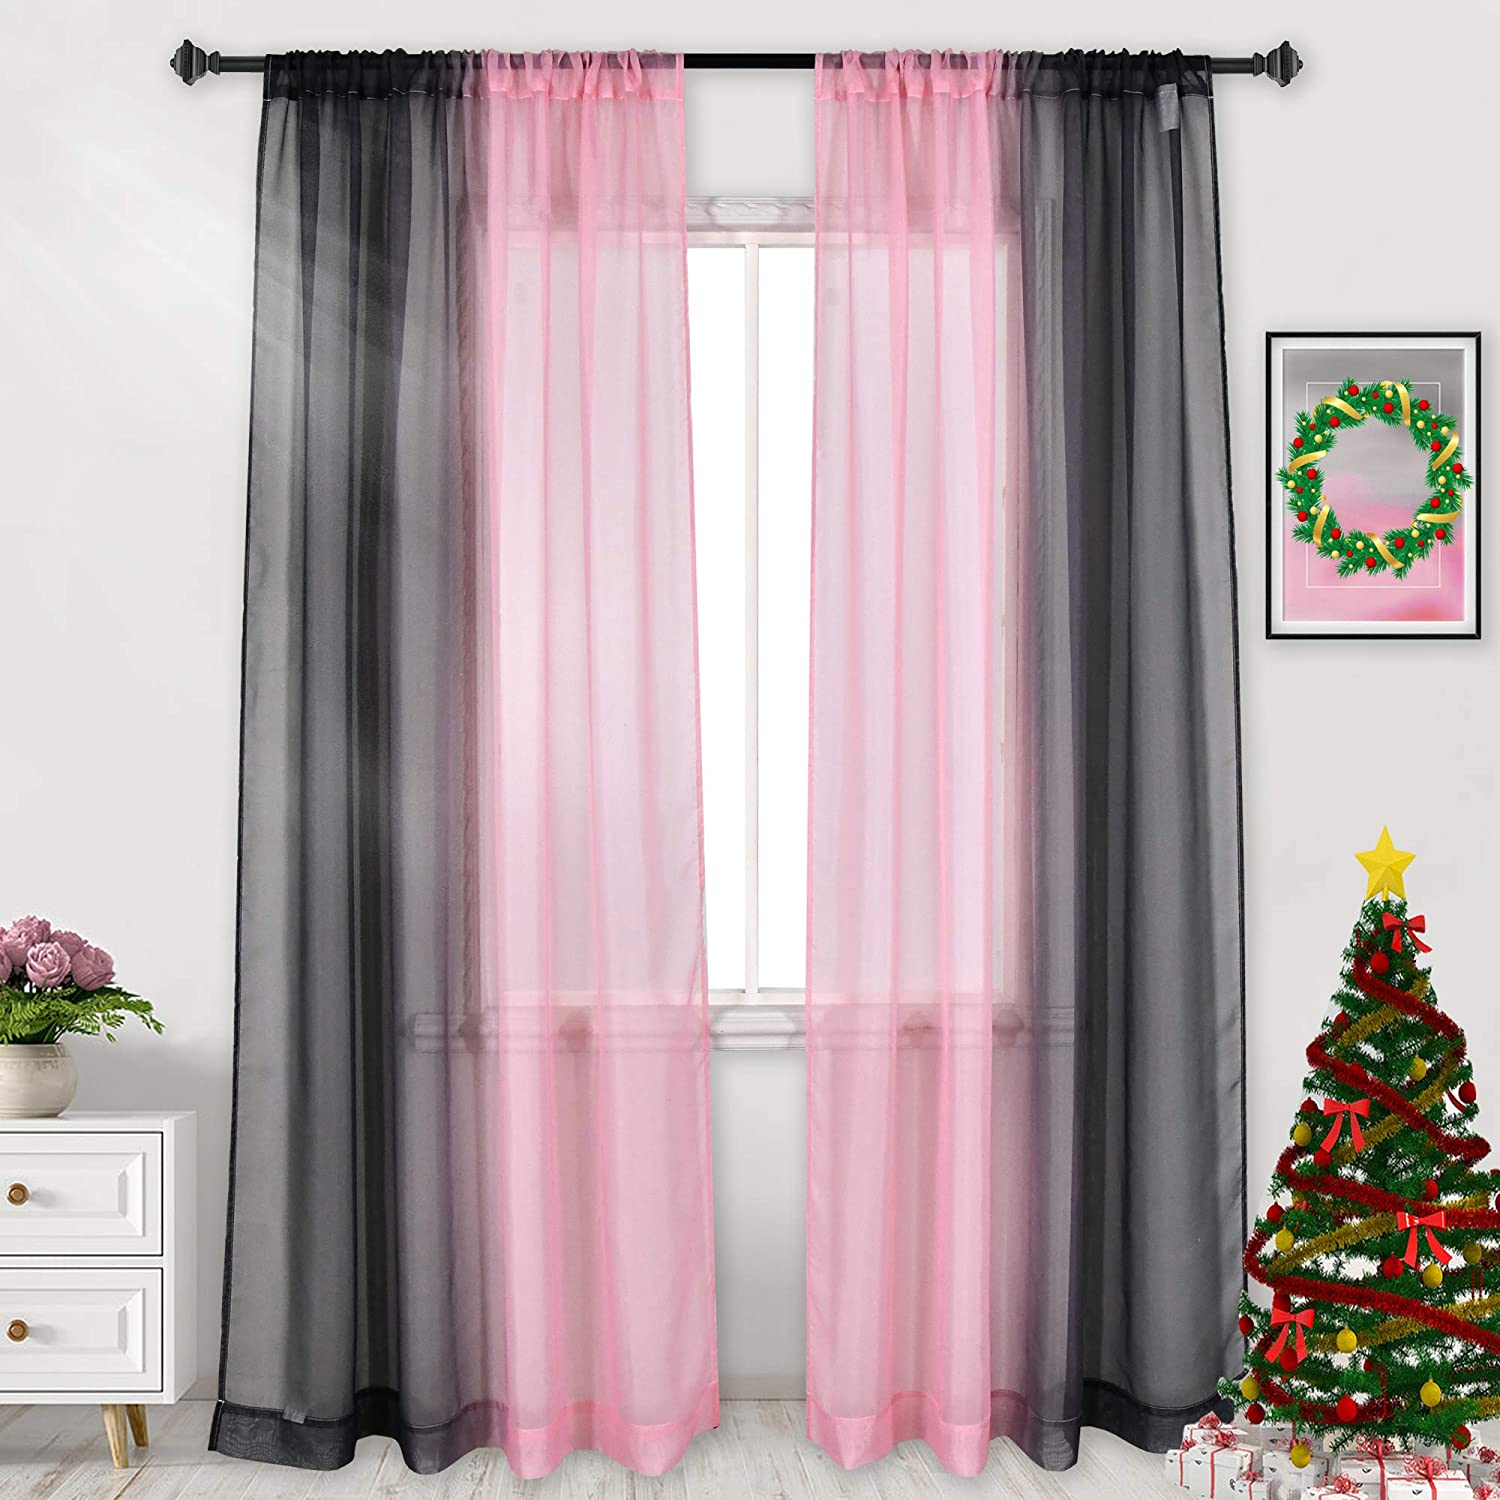 Black and Pink Curtains,Reversible Sunshine Sheer Curtains for Bedroom Girls Room Decor Rod Pocket 2 Tone Ombre Sheer Curtains for Basement Wedding Background 2 Panels 52X63